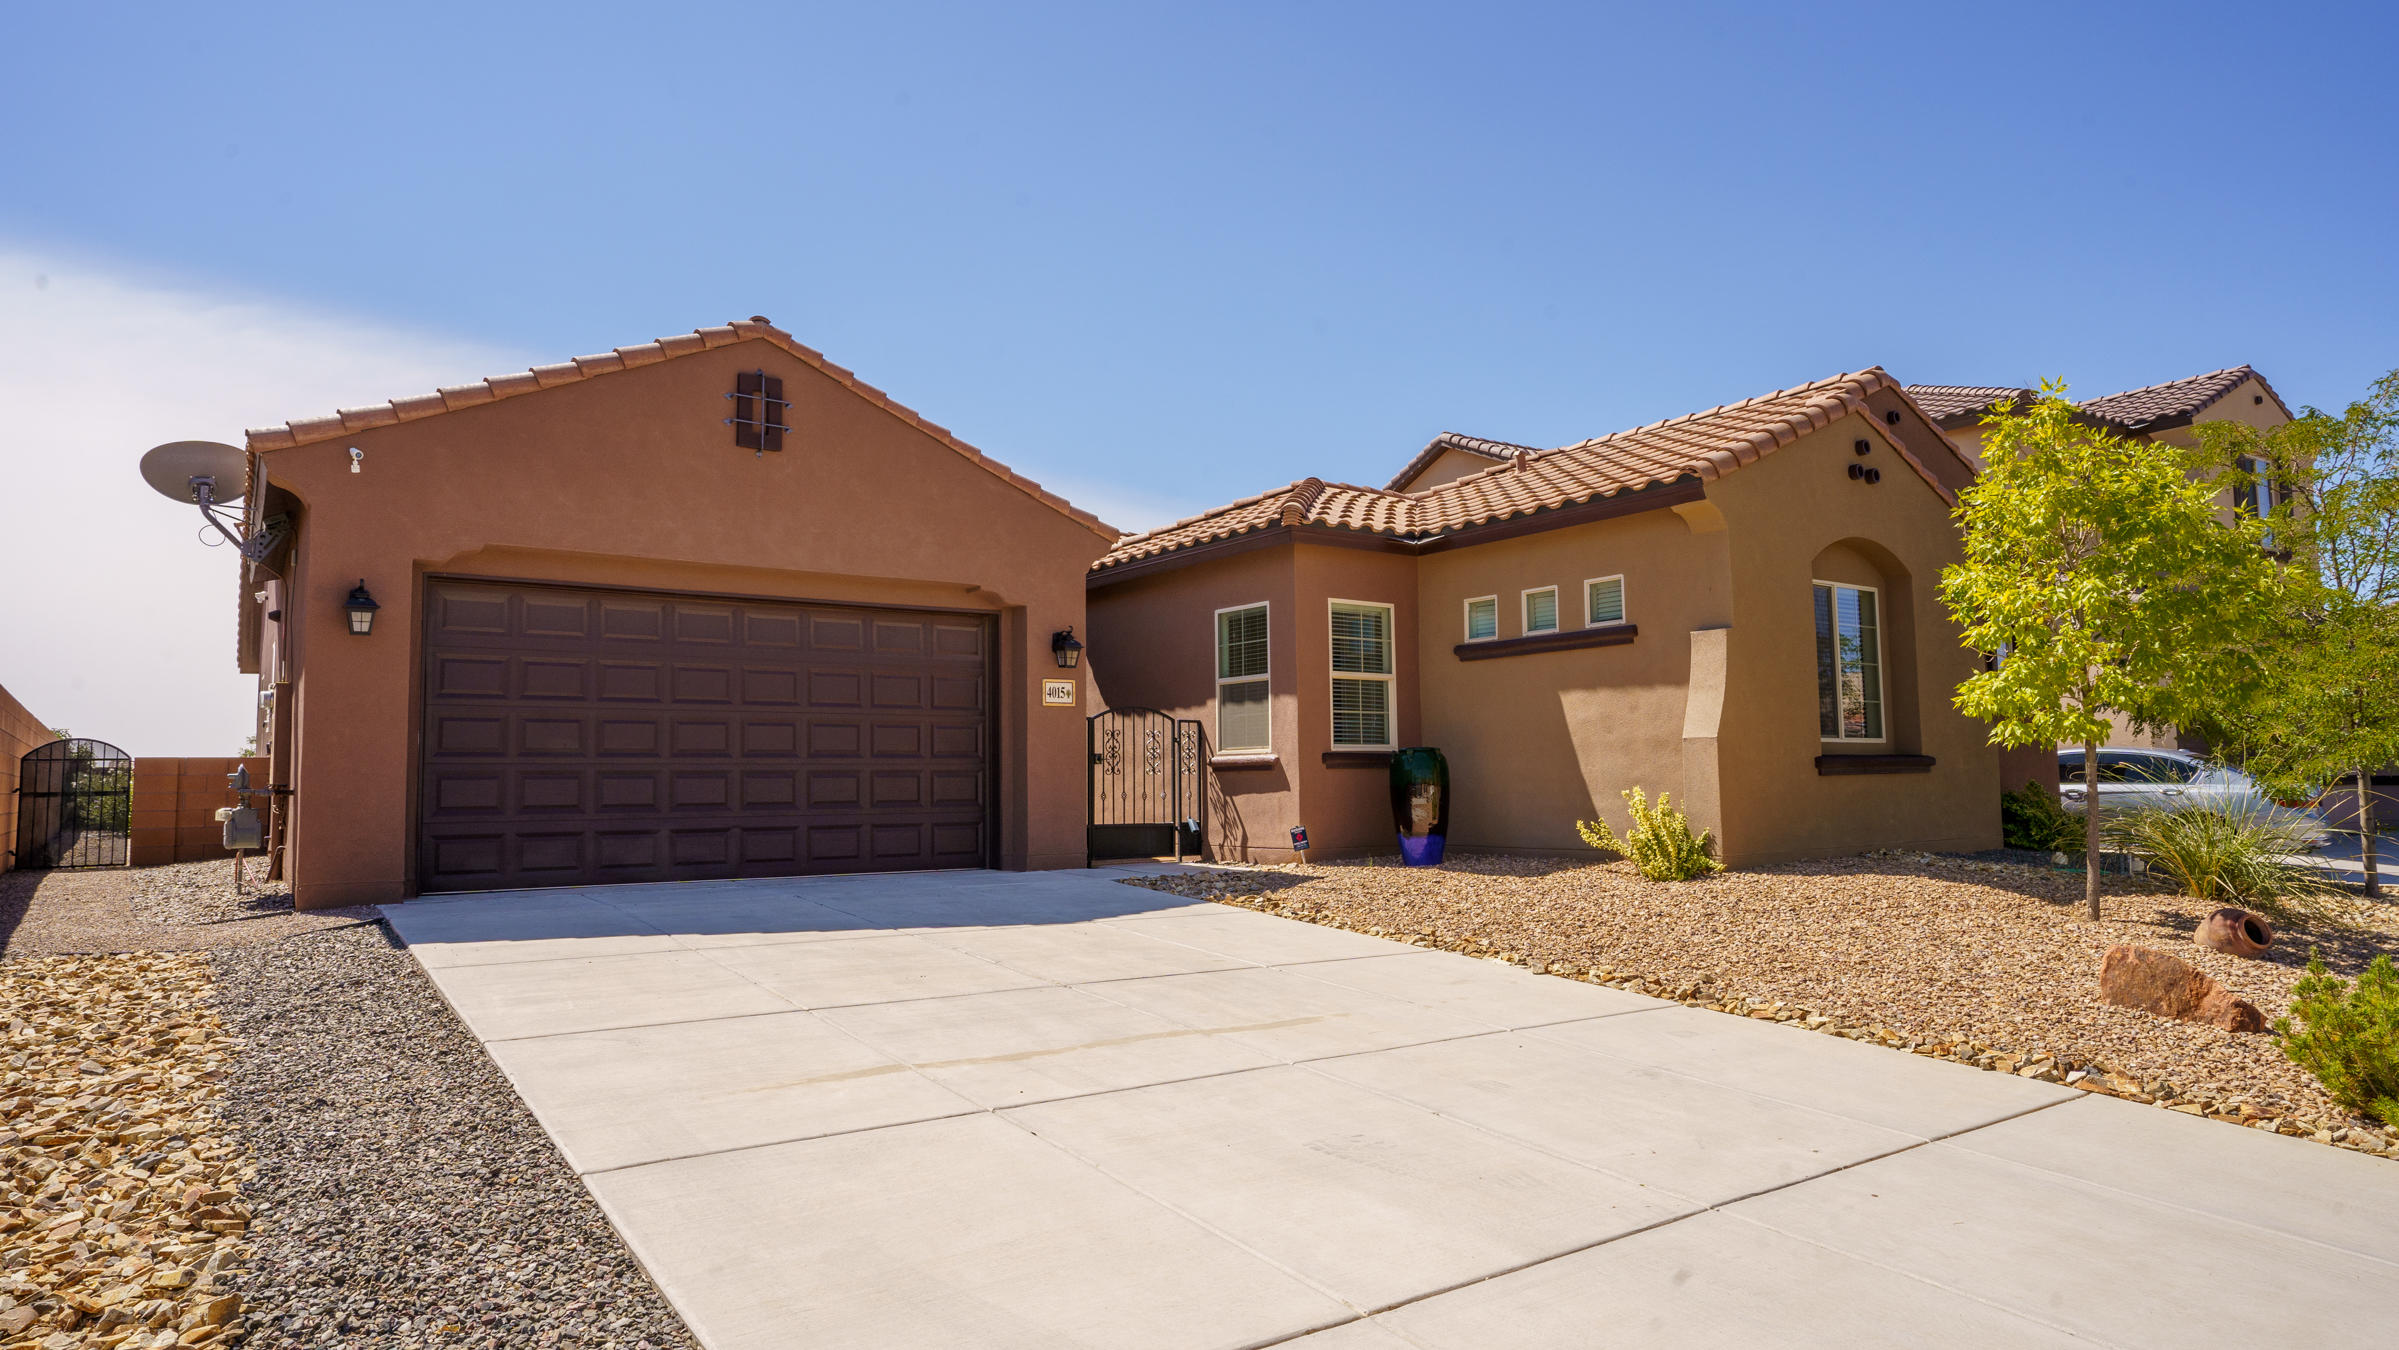 Pristine one story home that has owned solar panels make this a must see! This spacious 4 bedroom home offers a second master with an adjoining living room, open floor plan , large open kitchen that looks out to the main living room and dining room - perfect for entertaining! A beautiful landscaped yard with Sandia mountain views could be yours!Come by and see it today!